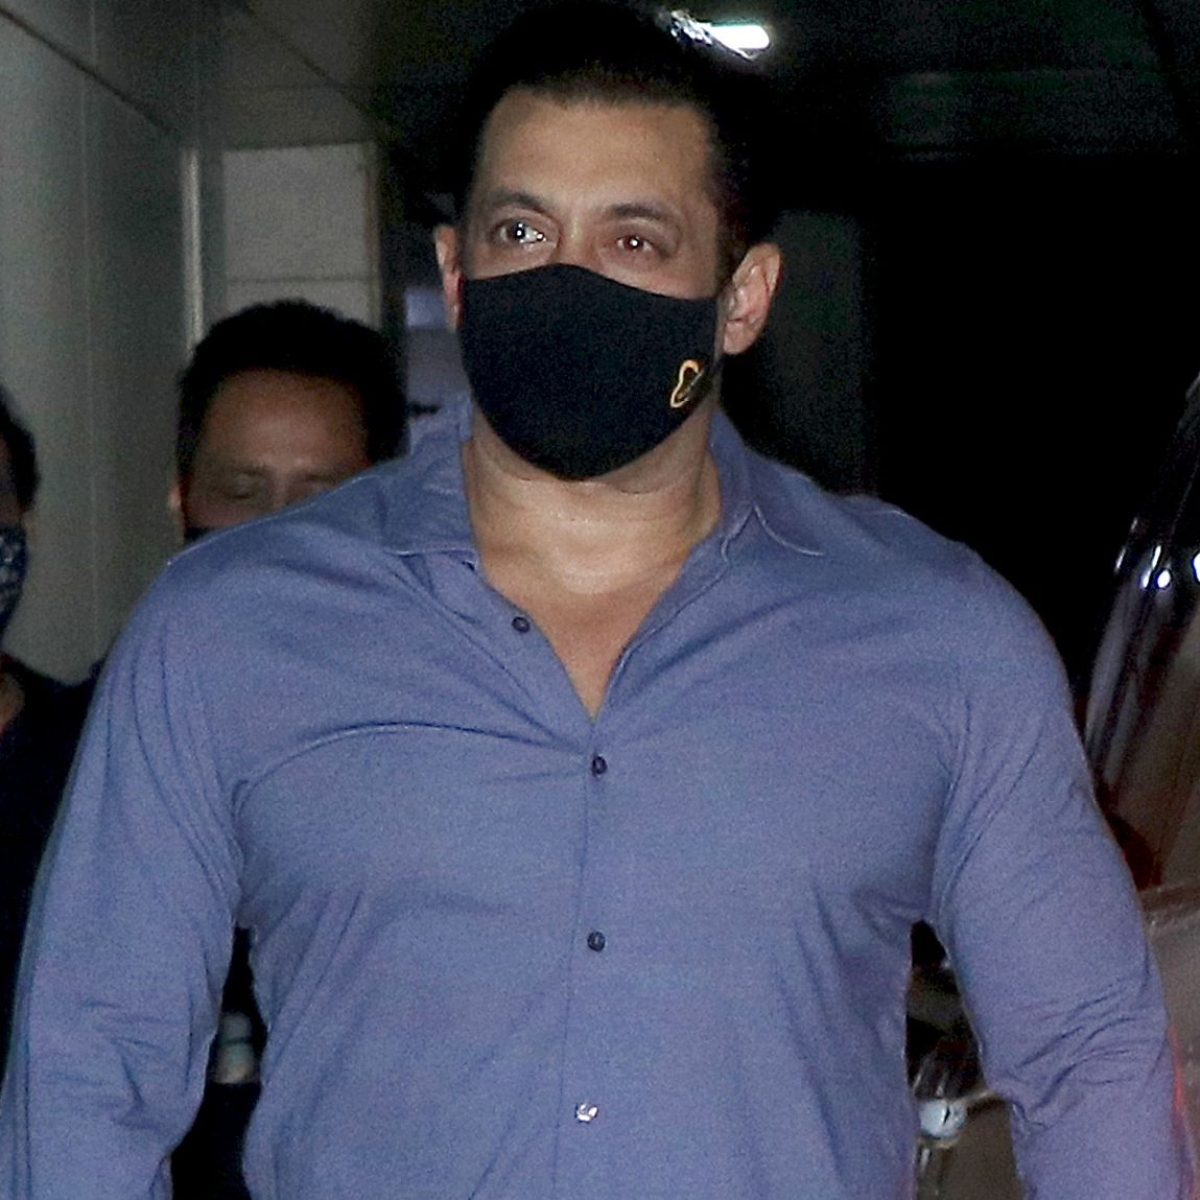 Salman Khan helps Karnataka teen who sought financial help after his father succumbed to COVID-19